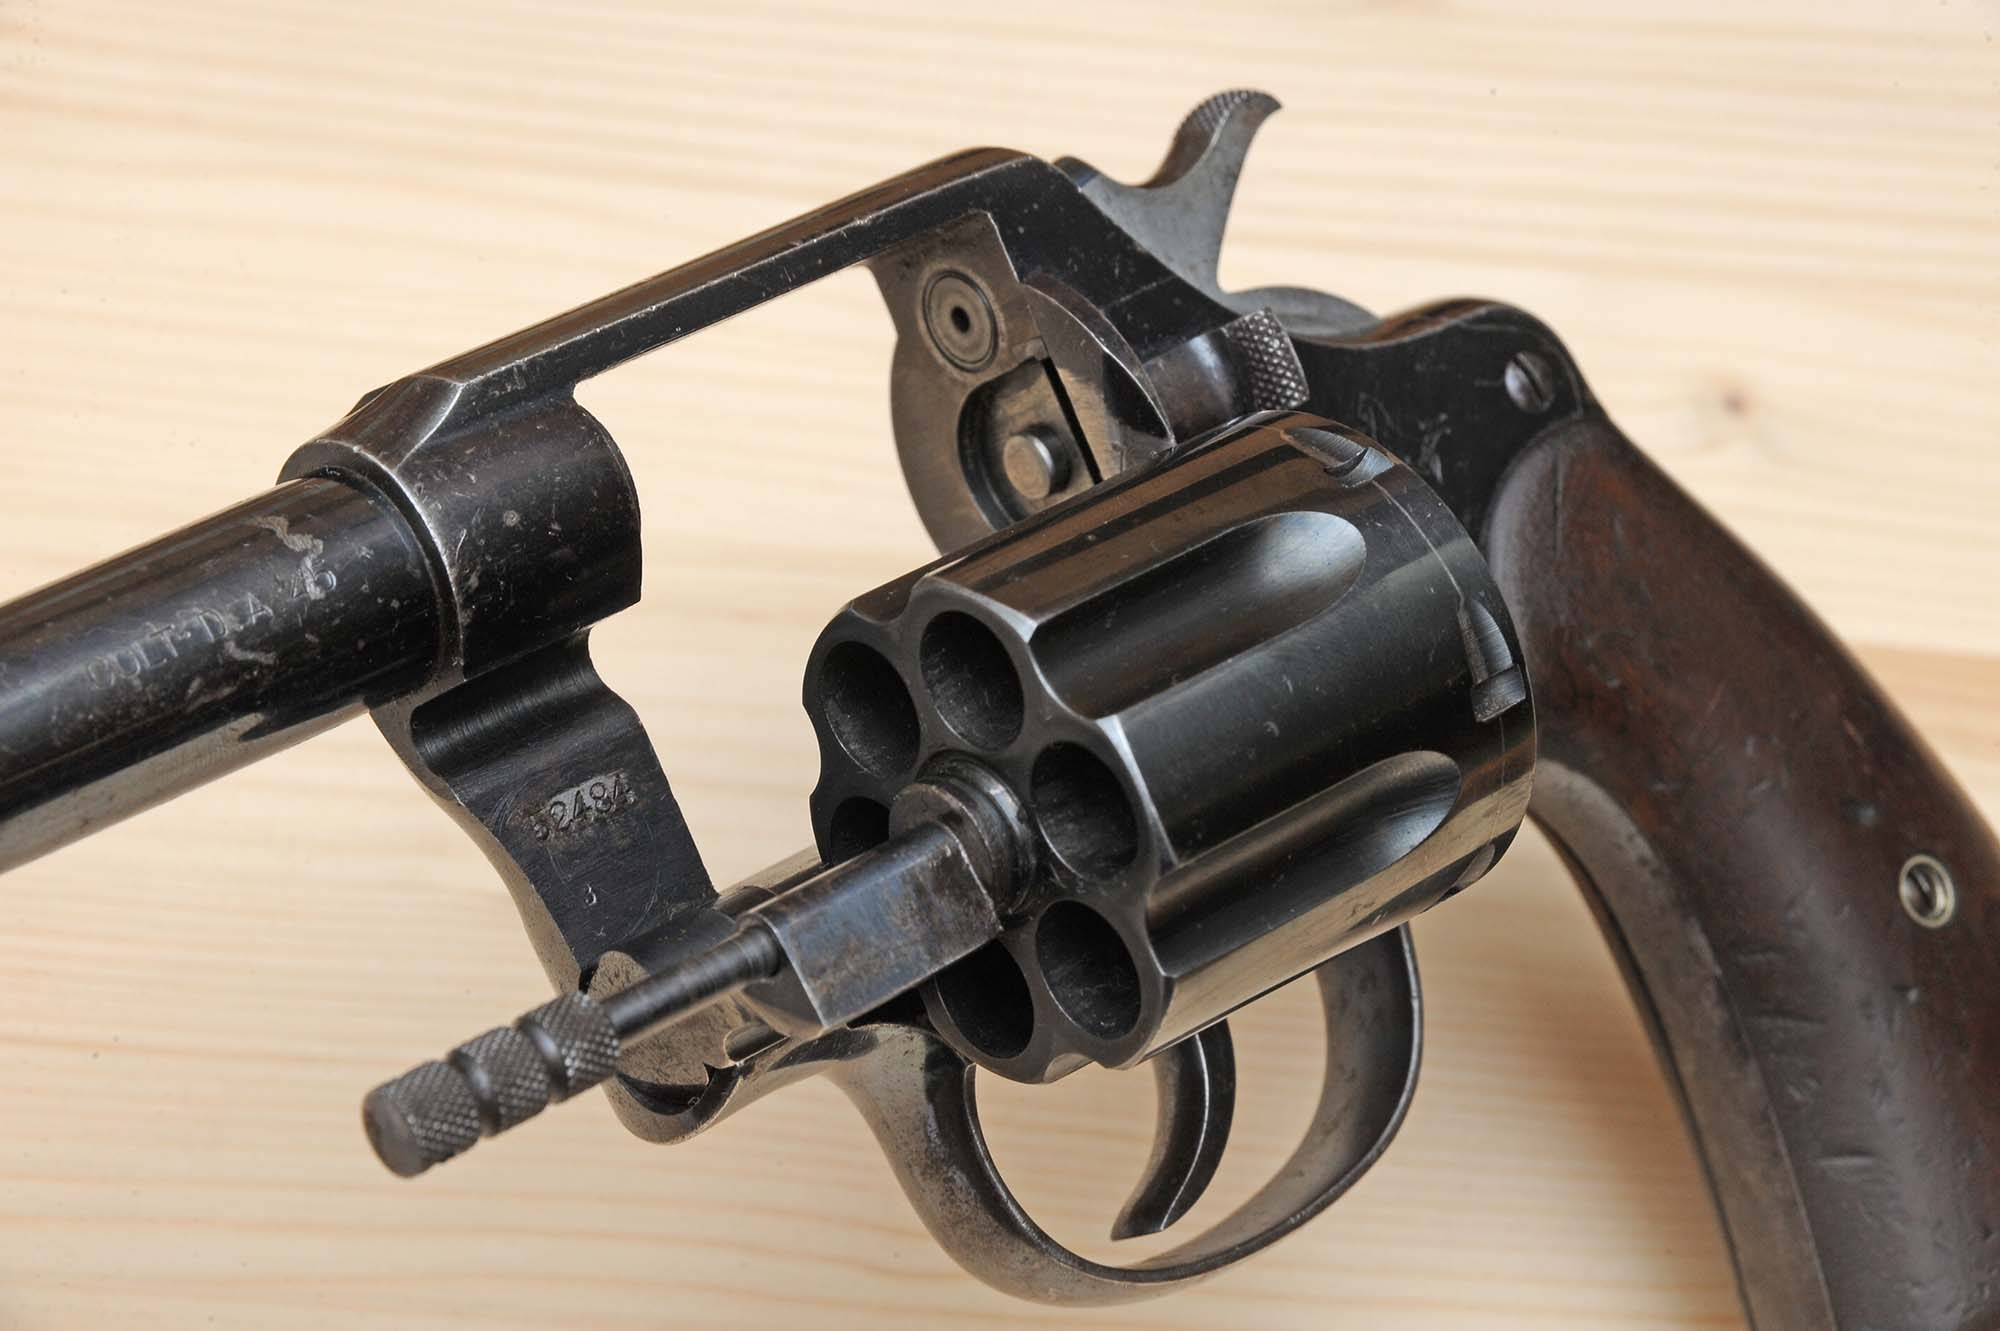 Frame of the Colt New Service 1909 revolver